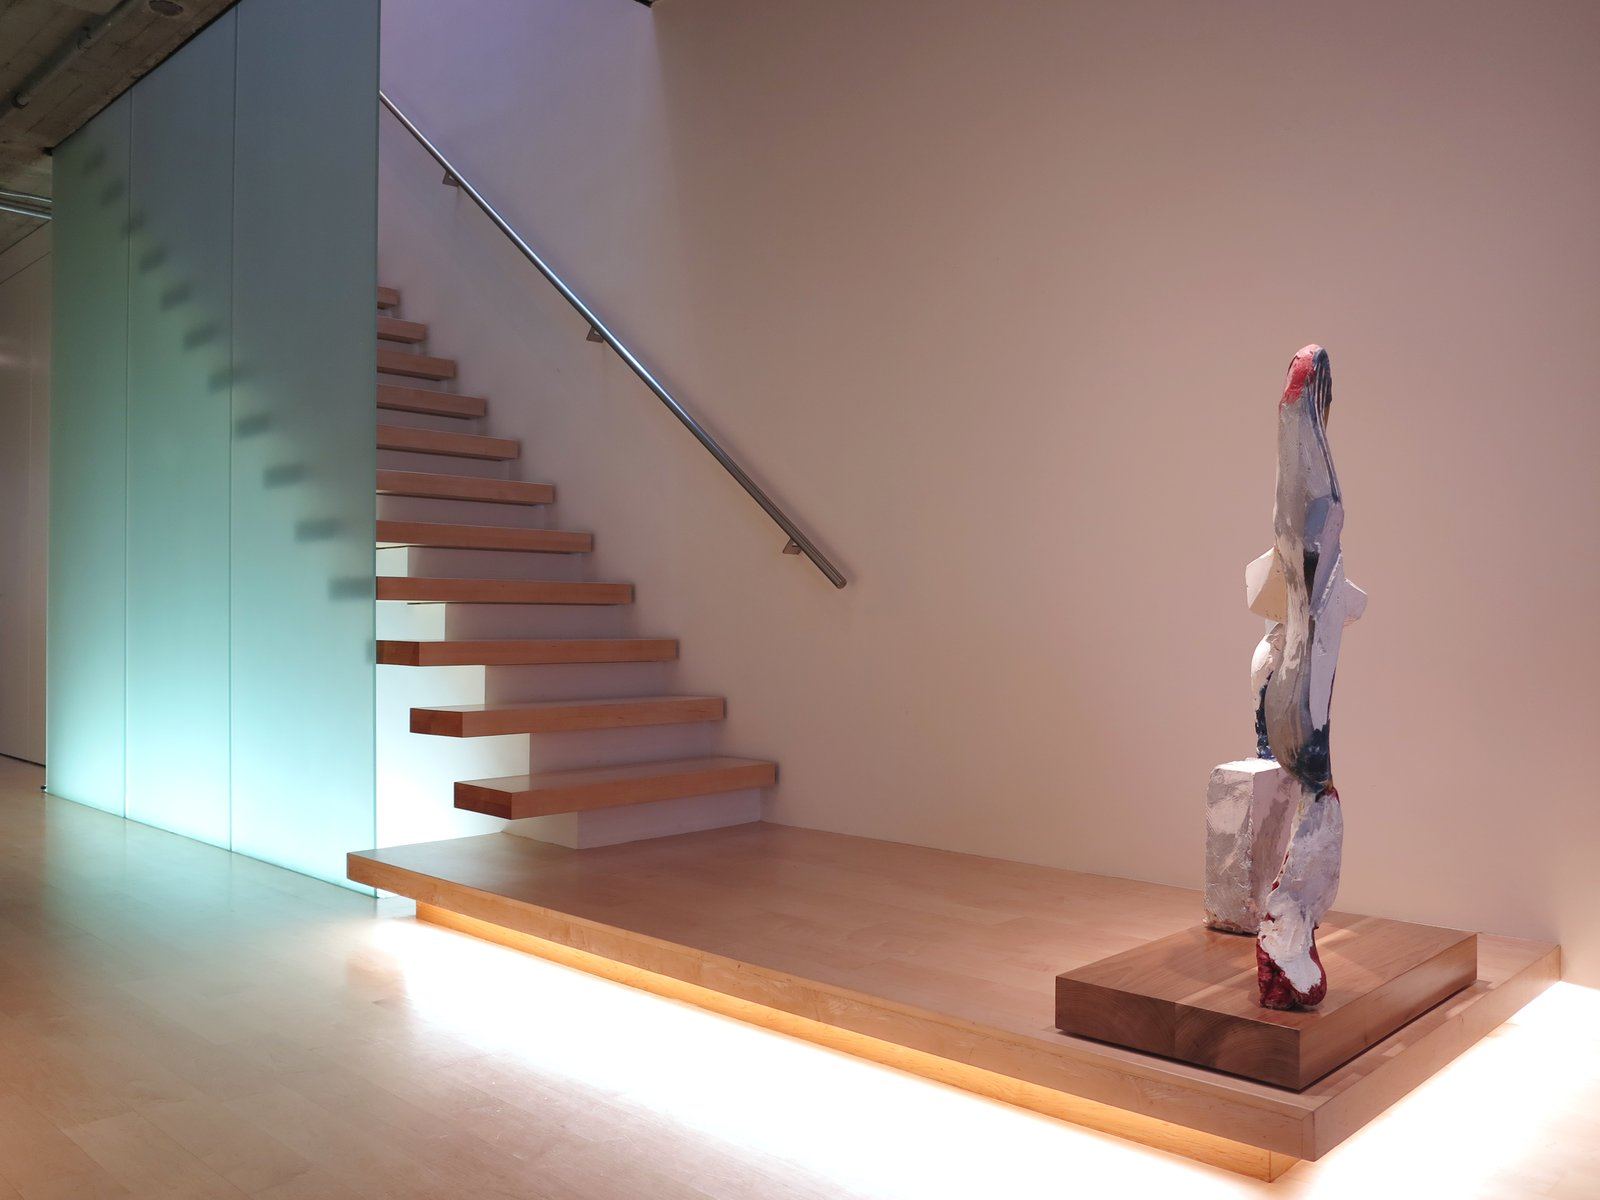 Francis Mill loft staircase with plaster sculpture